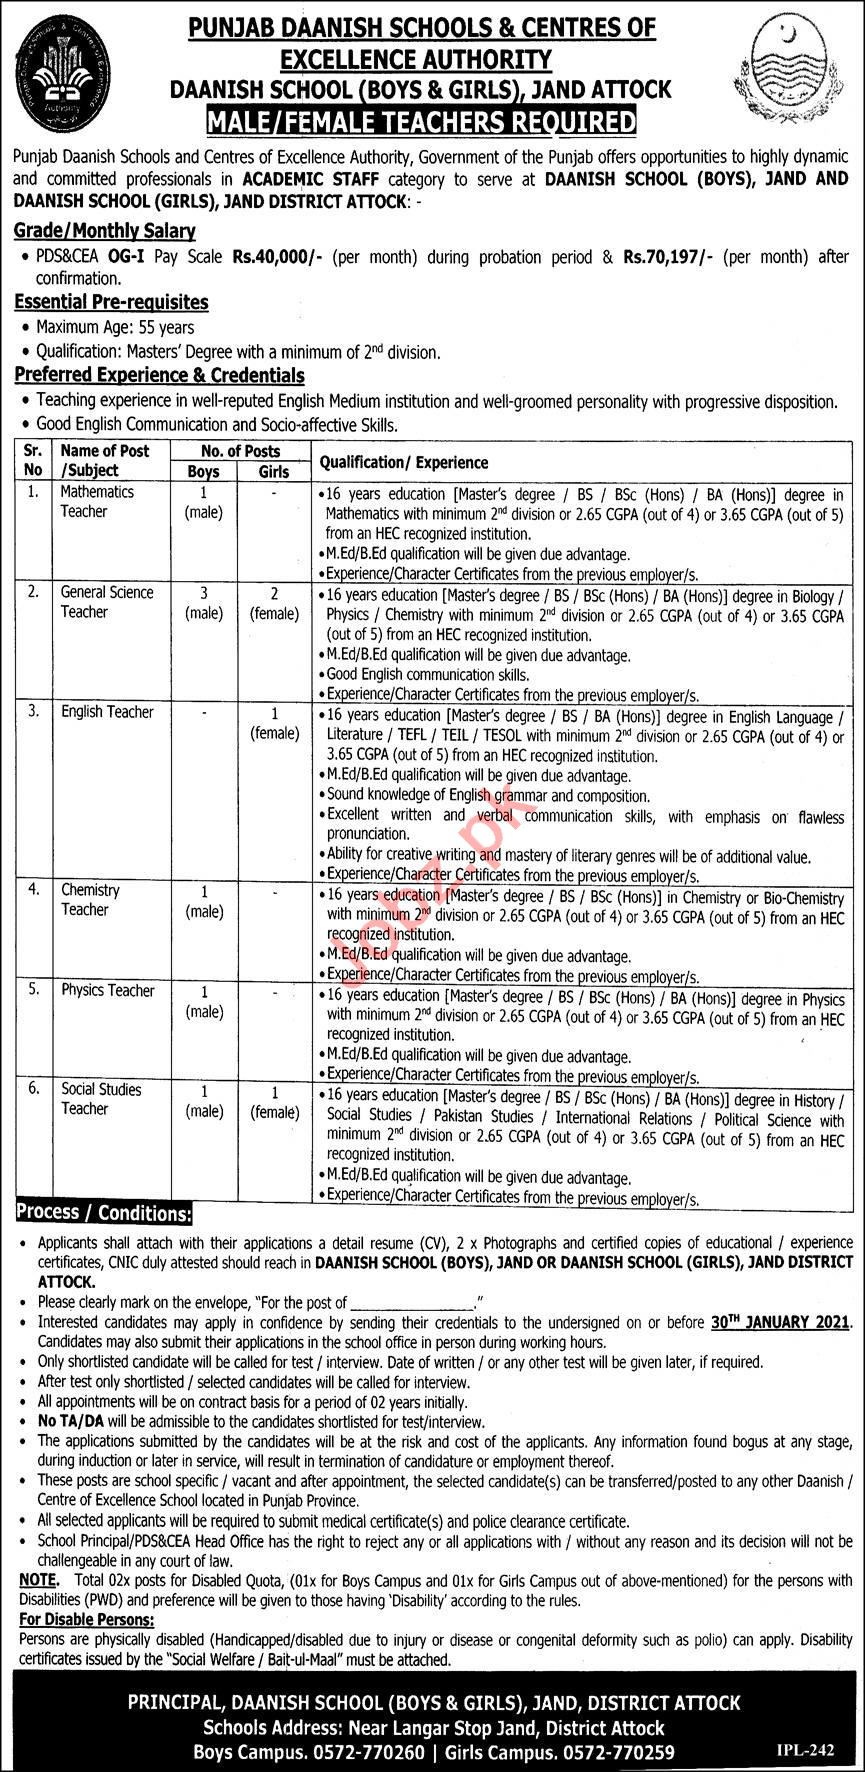 Daanish School Boys & Girls Jand Attock Jobs 2021 Teachers